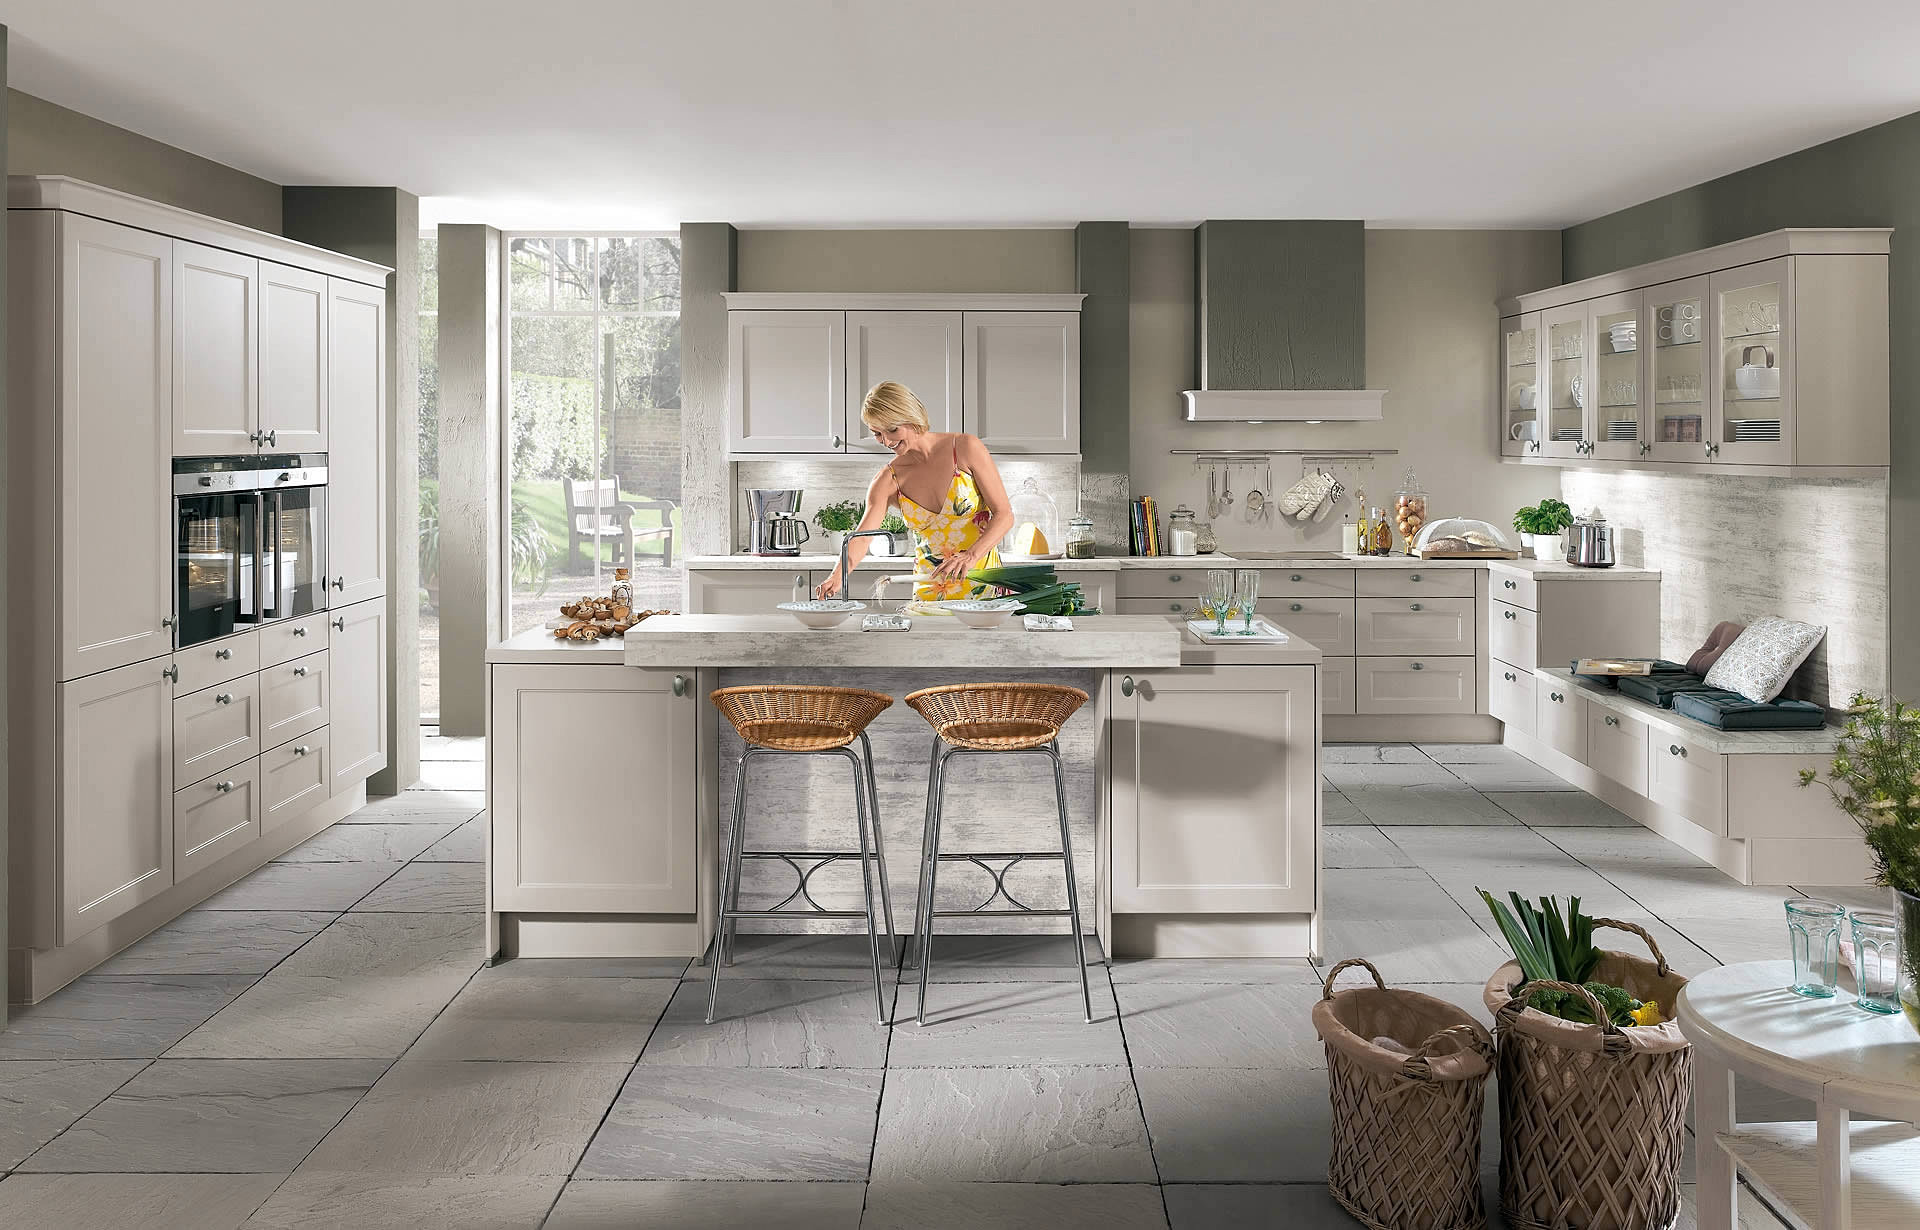 traditional kitchen for your kitchen remodeling. Kitchen Remodeling Katy   Bathroom Remodeling Katy   Houston